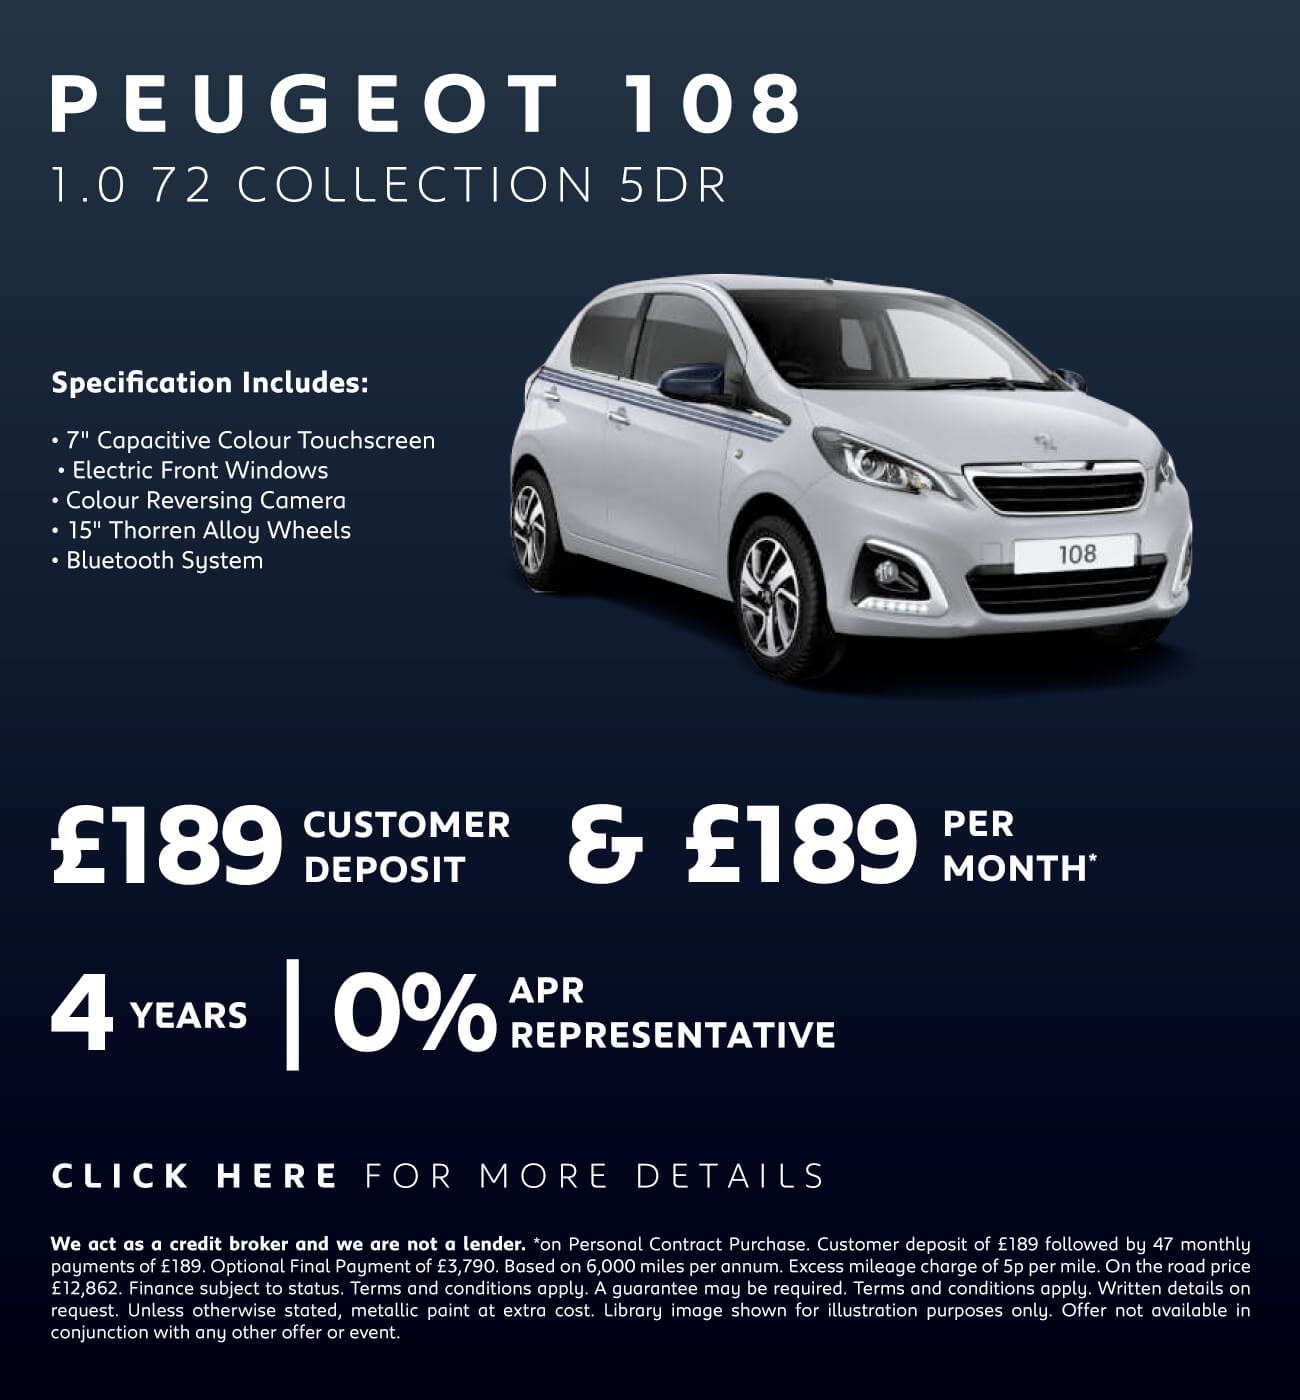 Peugeot 108 1.0 72 Collection 5Dr - Macklin Motors